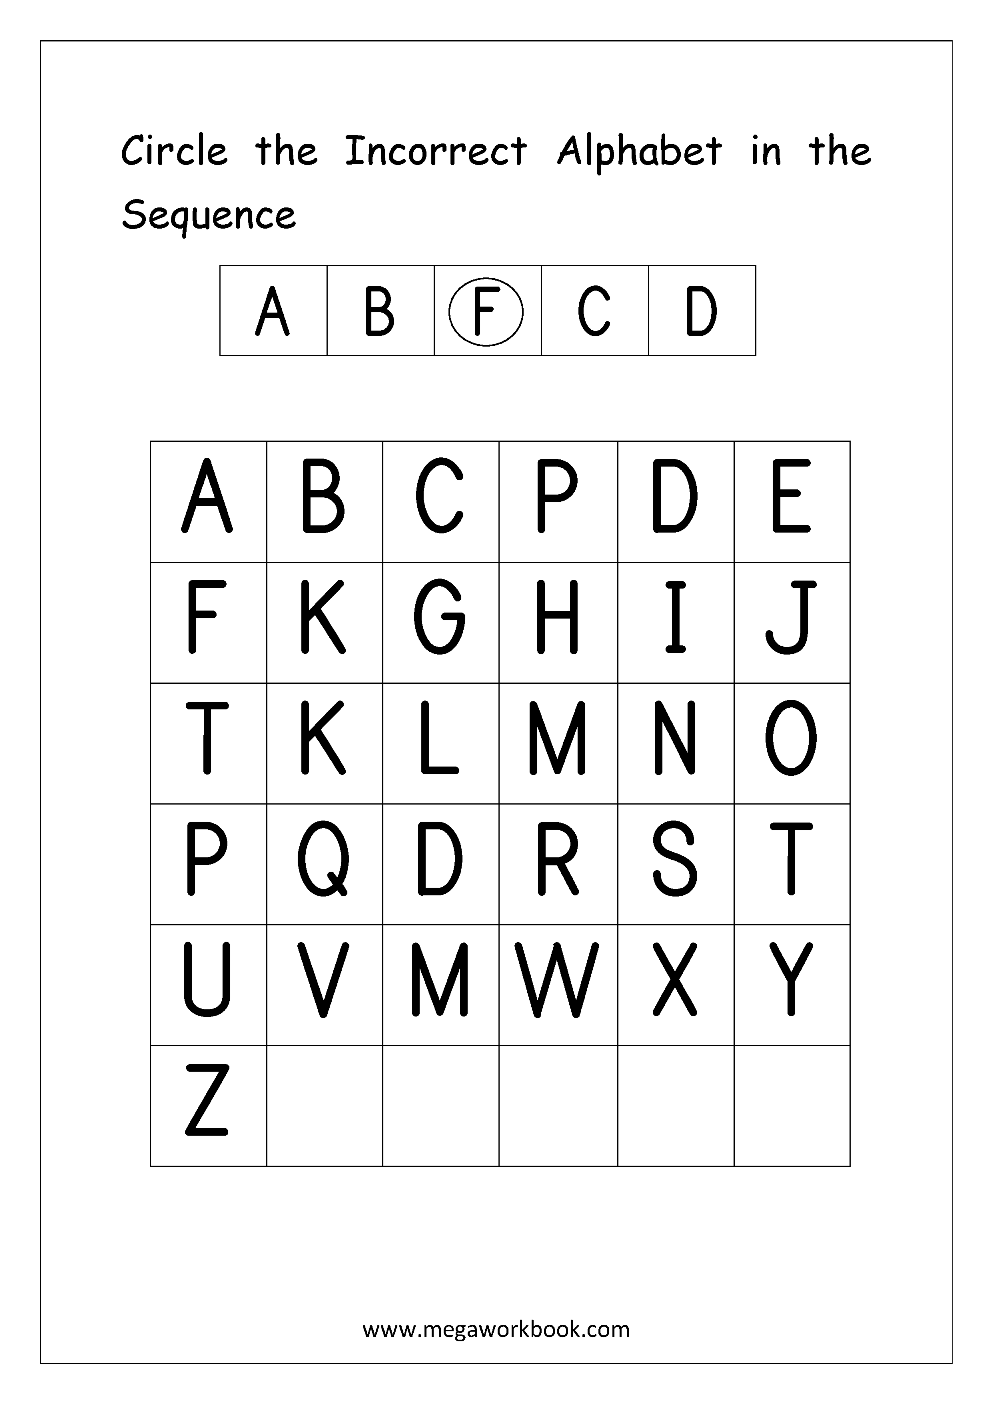 Free English Worksheets - Alphabetical Sequence throughout Alphabet Sequencing Worksheets